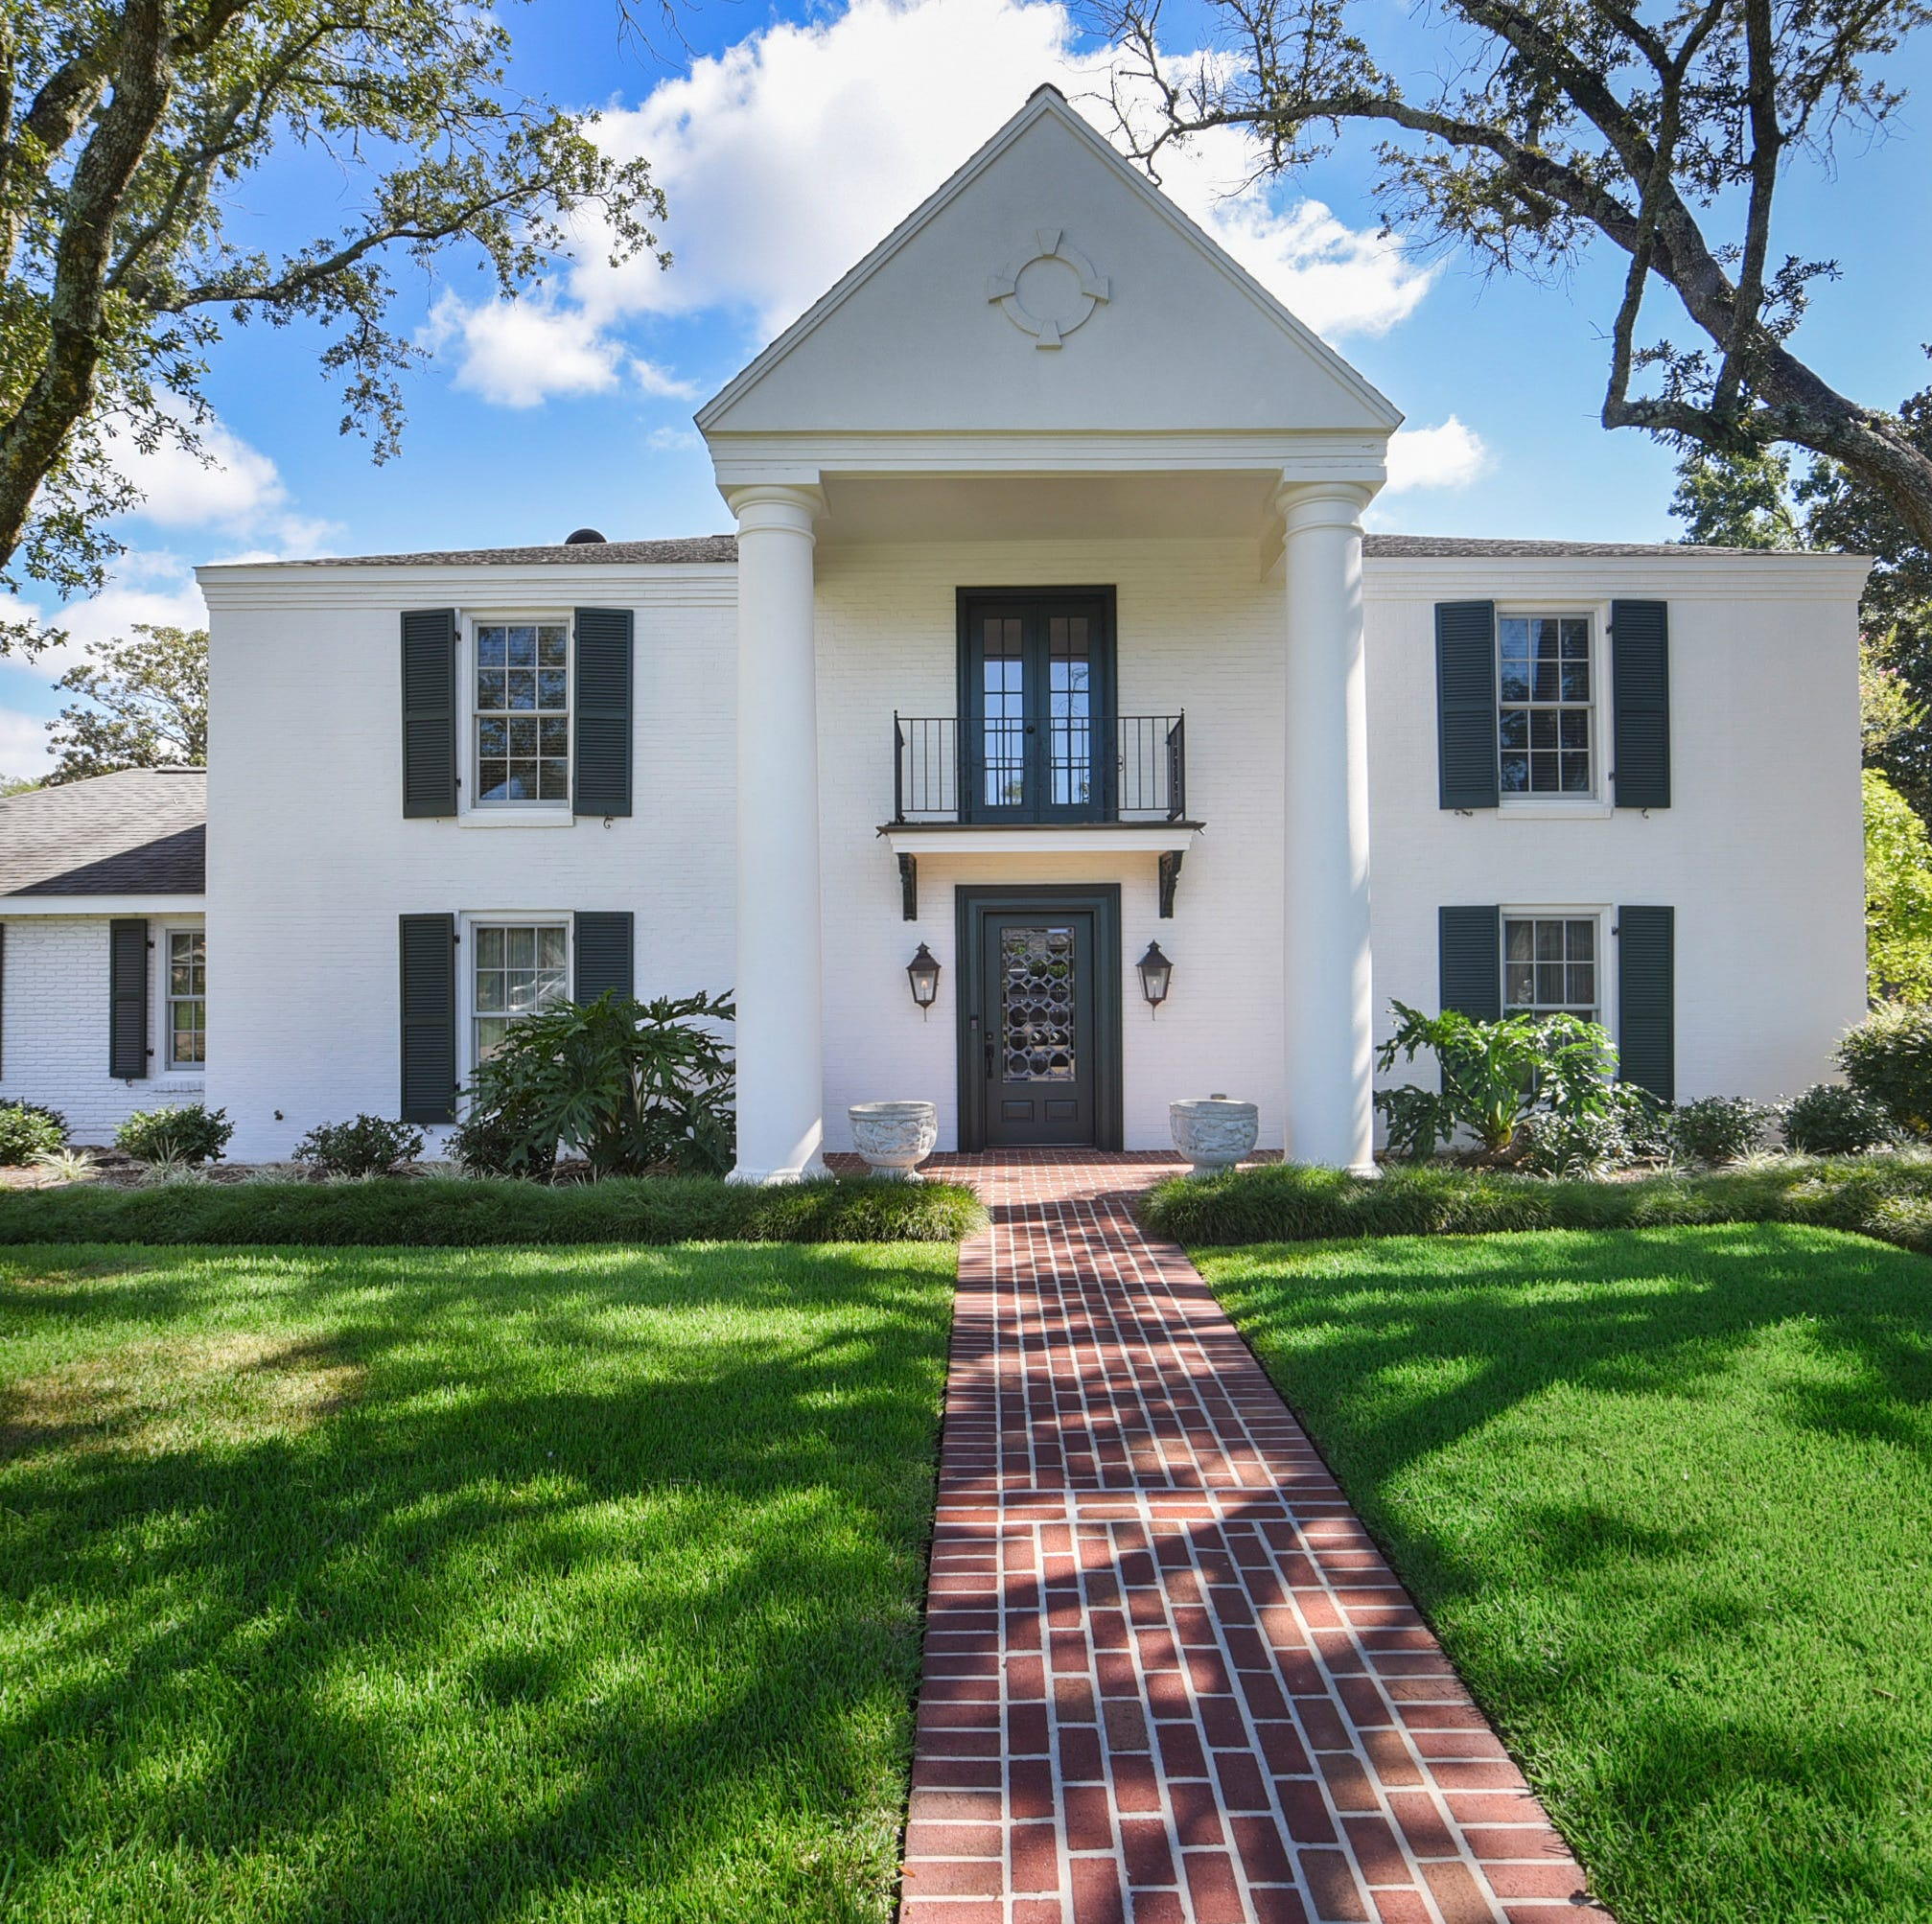 Got $1.3M? familiar Greenbriar mansion is up for grabs